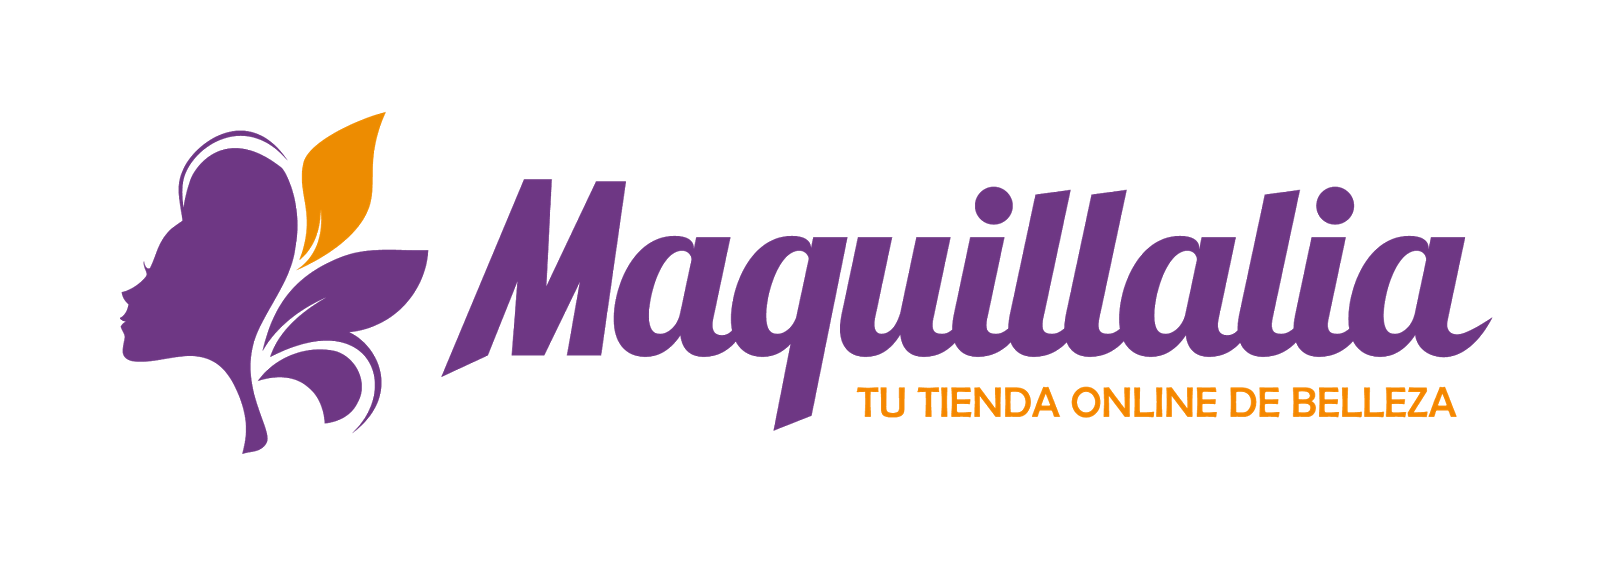 maquila.png